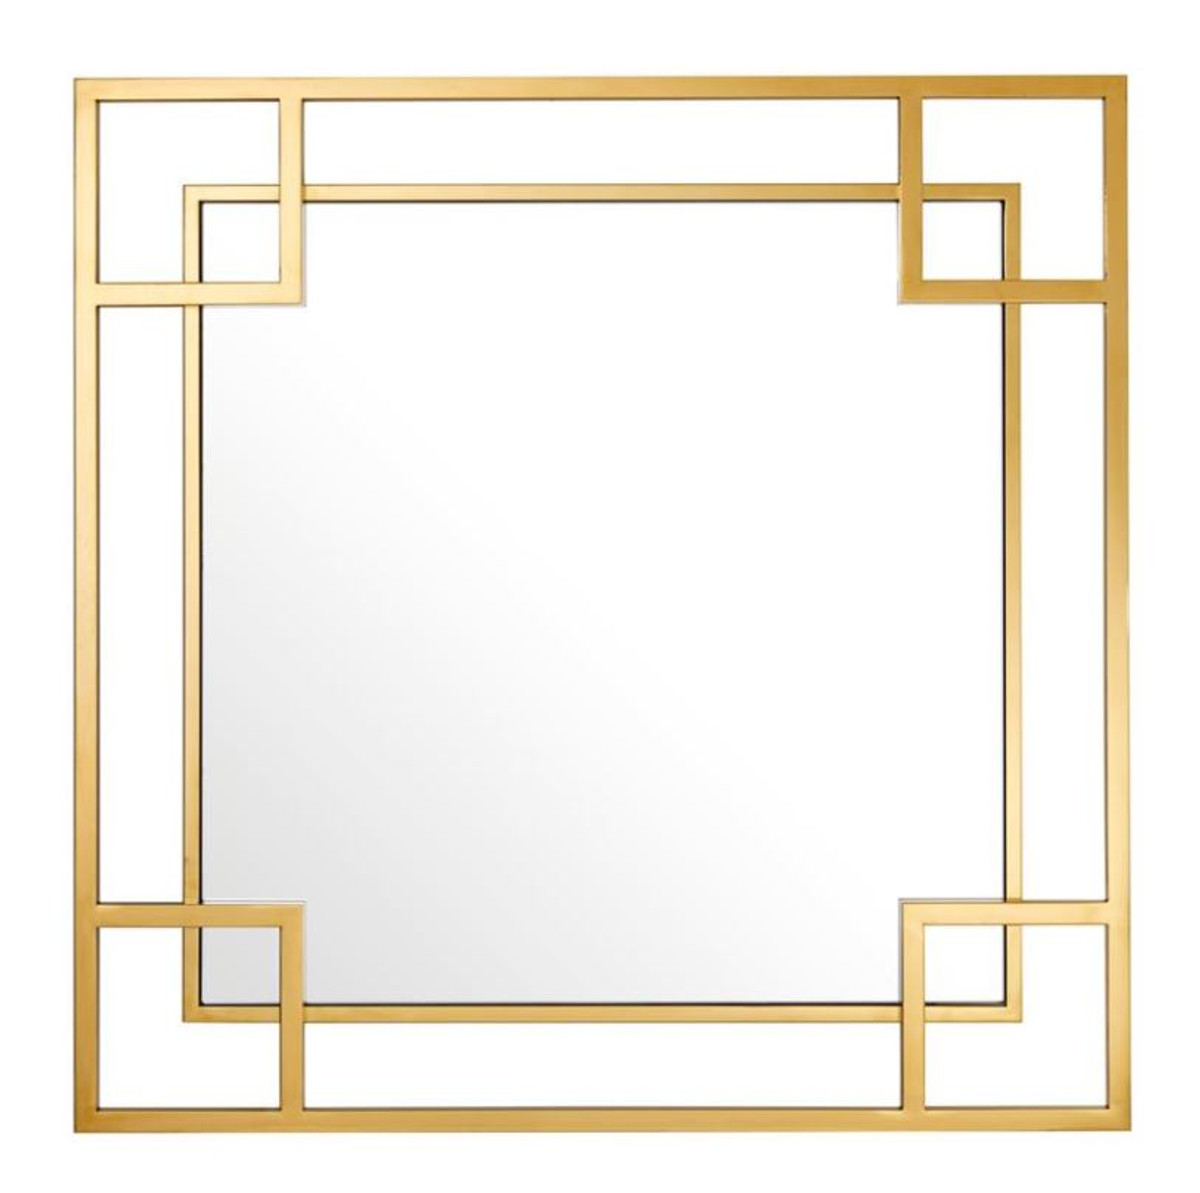 casa padrino design wall mirror gold 90 x h 90 cm luxury mirror mirrors luxury mirrors luxury. Black Bedroom Furniture Sets. Home Design Ideas